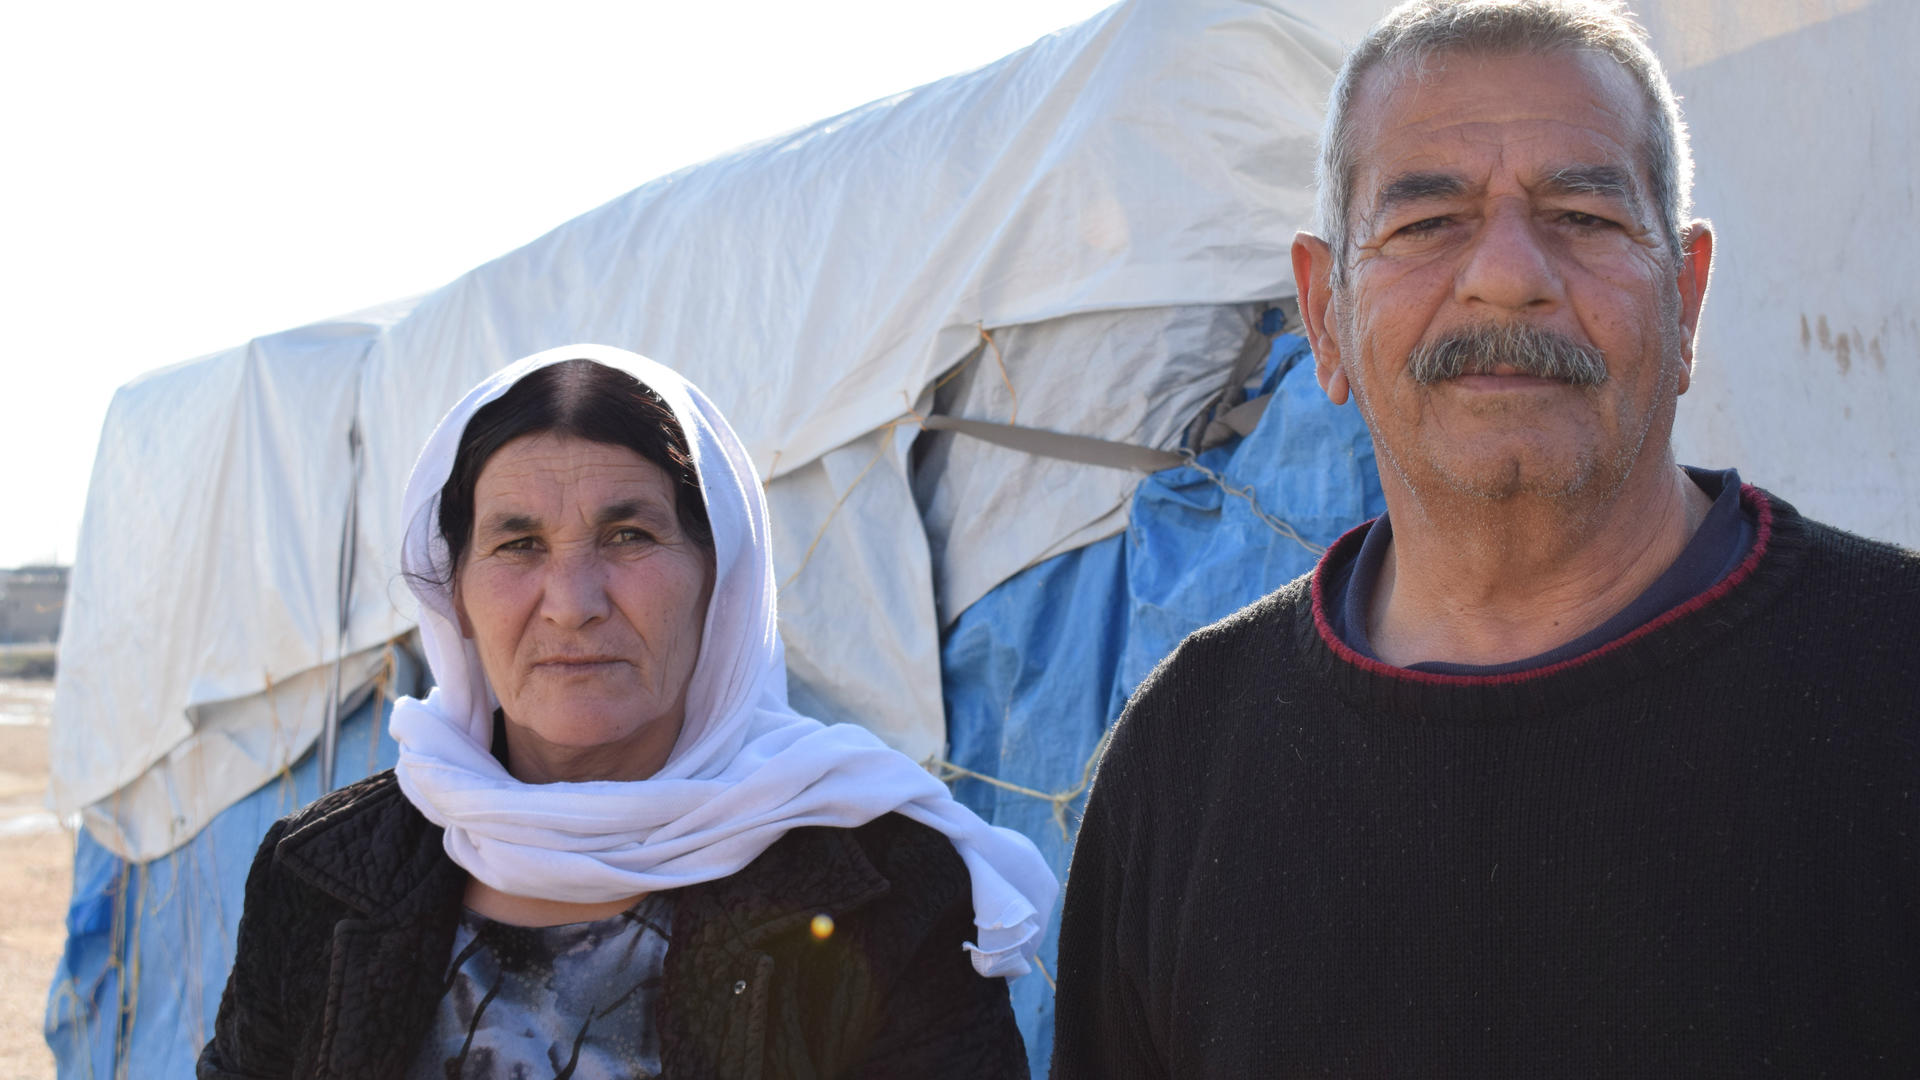 Suleiman Khalf Kajo and his wife, Khabshe outside a tent in Newroz refugee camp in Syria